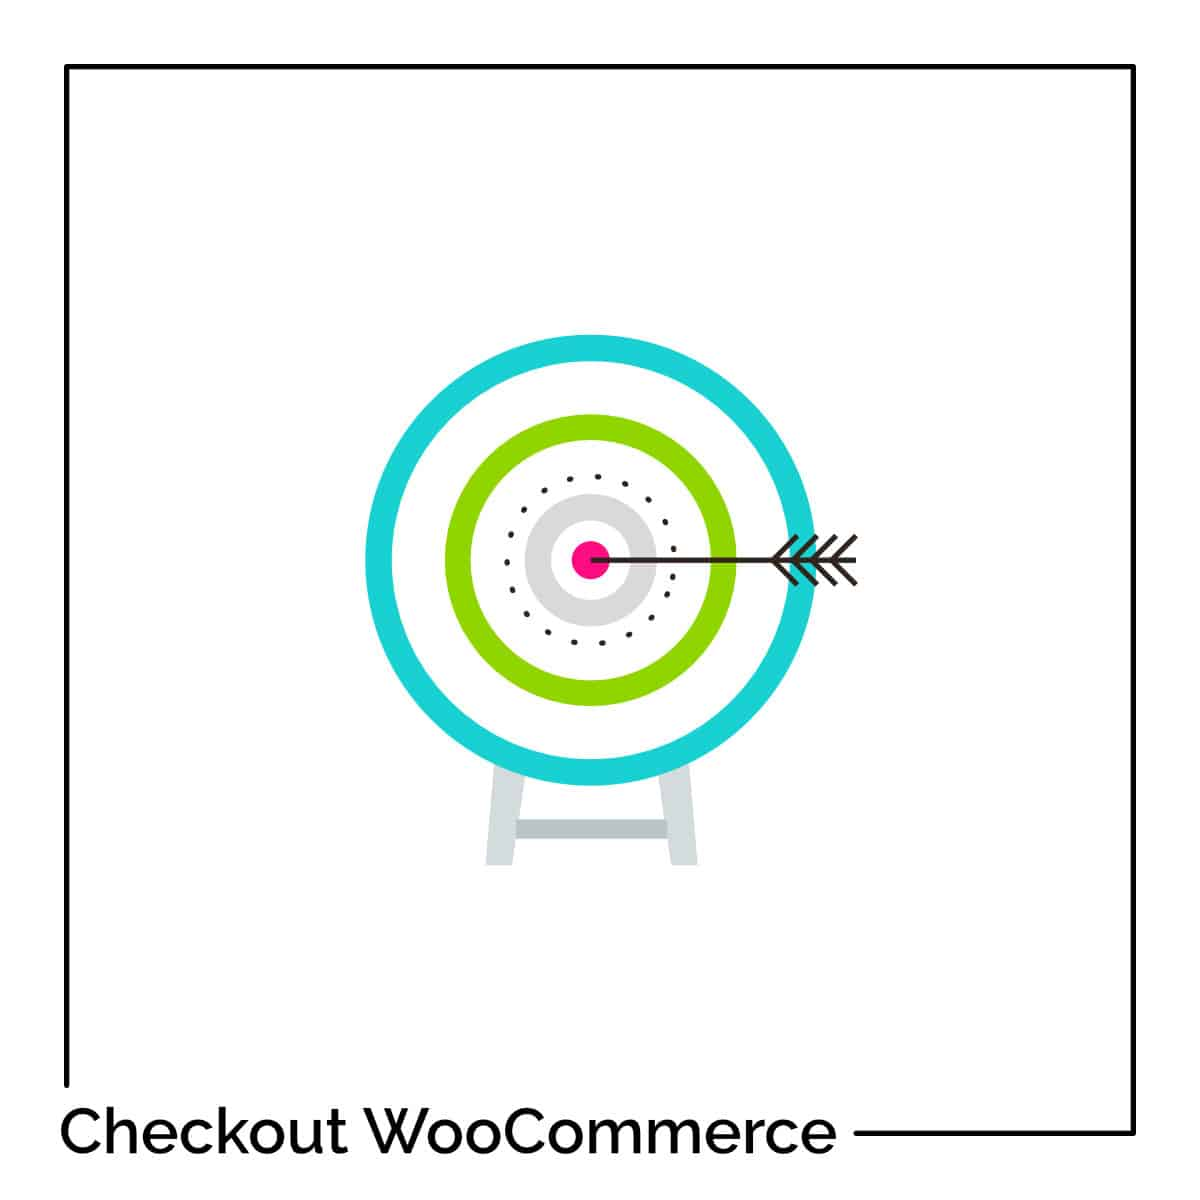 Comment optimiser le checkout de sa boutique WooCommerce ?